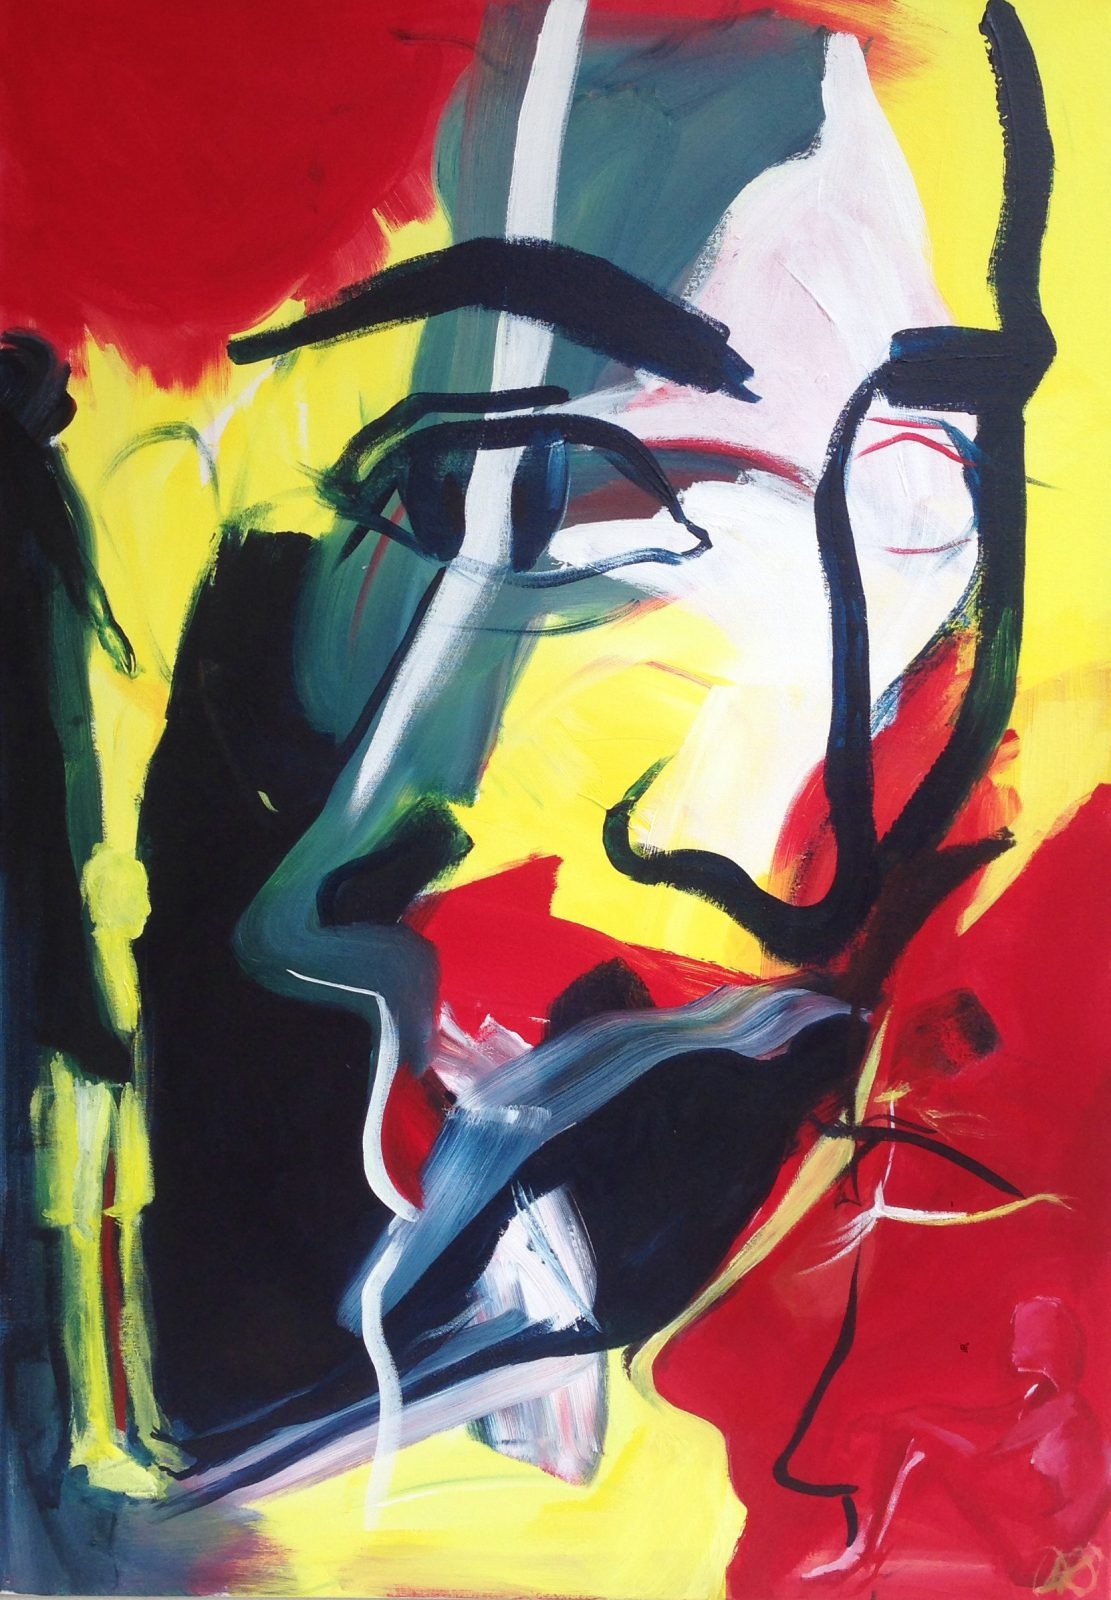 Waiting game (2014), abstract figurative art, colour, daniela raytchev, mood, abstract portrait